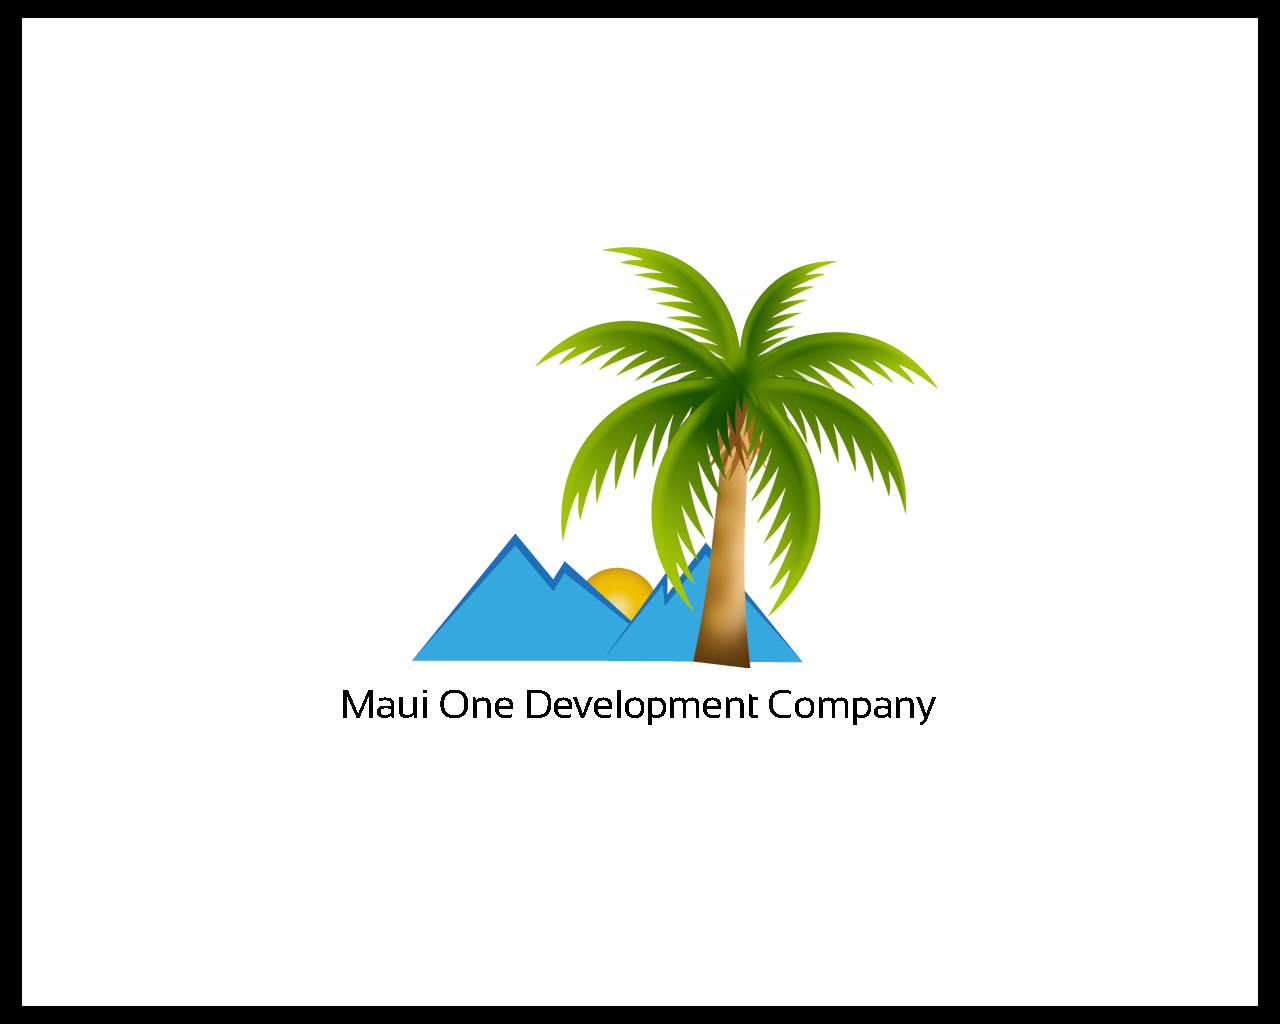 Palm Tree Logo Stock Images  Dreamstime